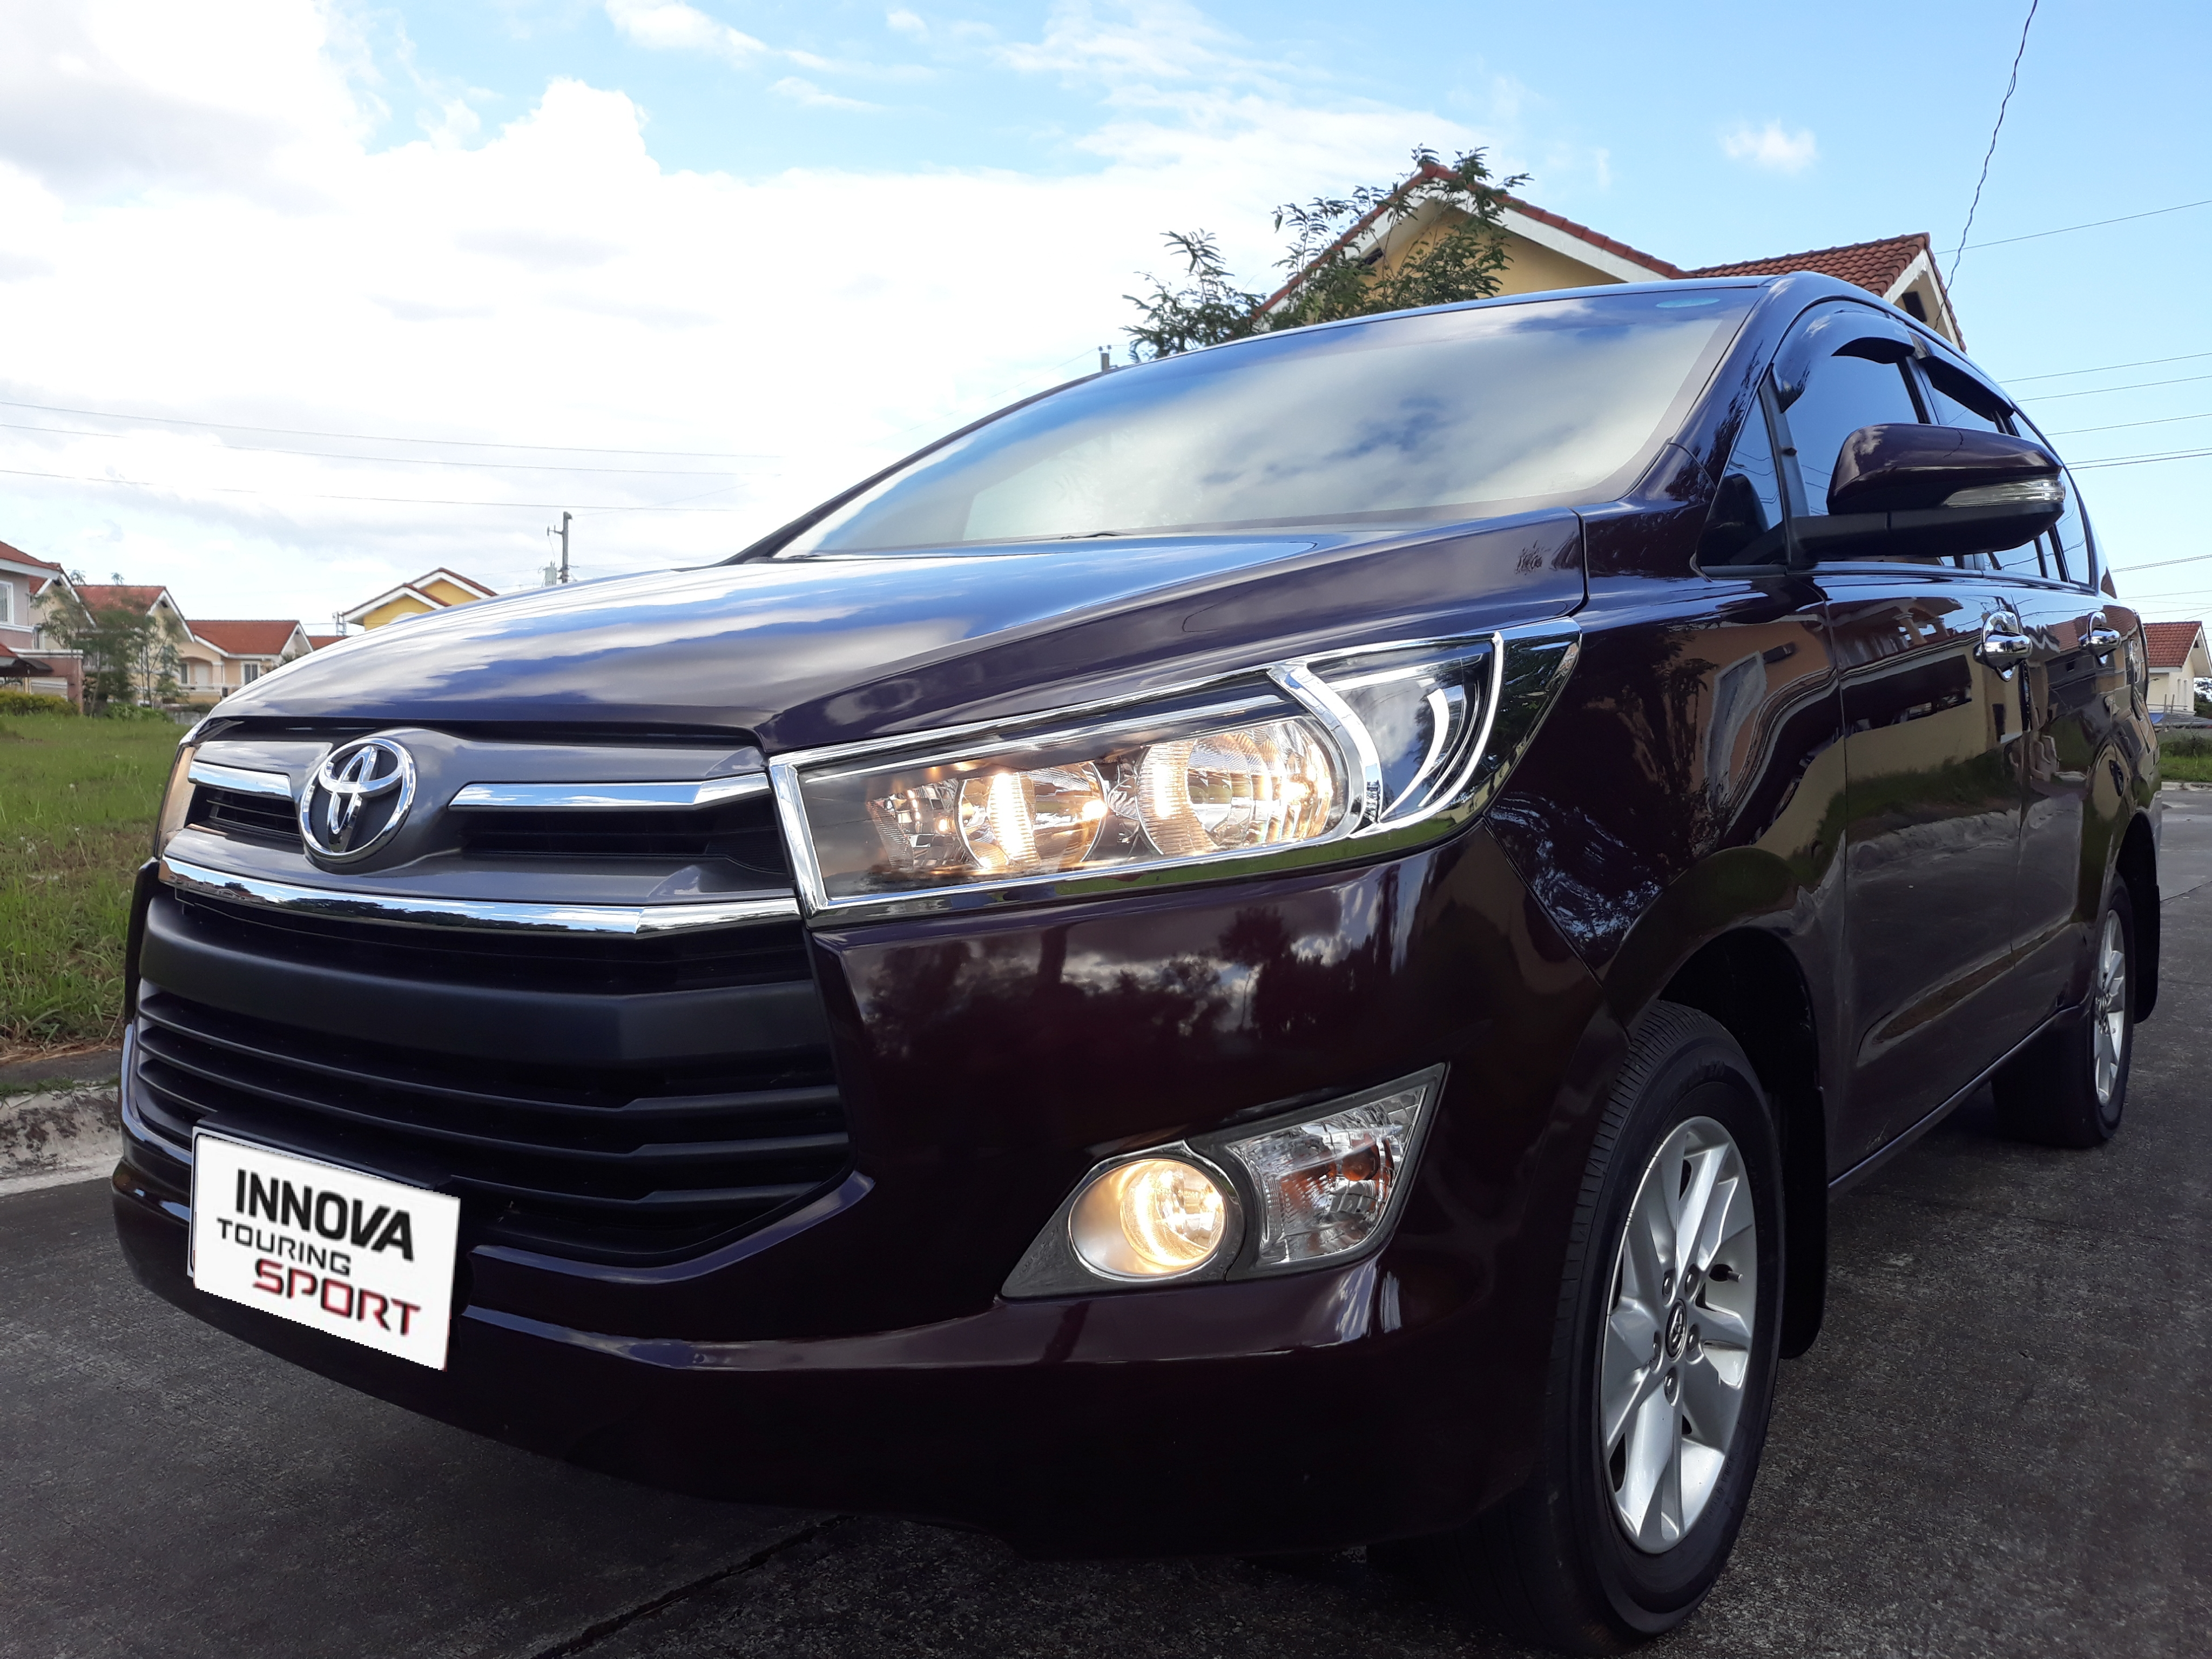 2017 Toyota Innova 2.8E Diesel Automatic photo